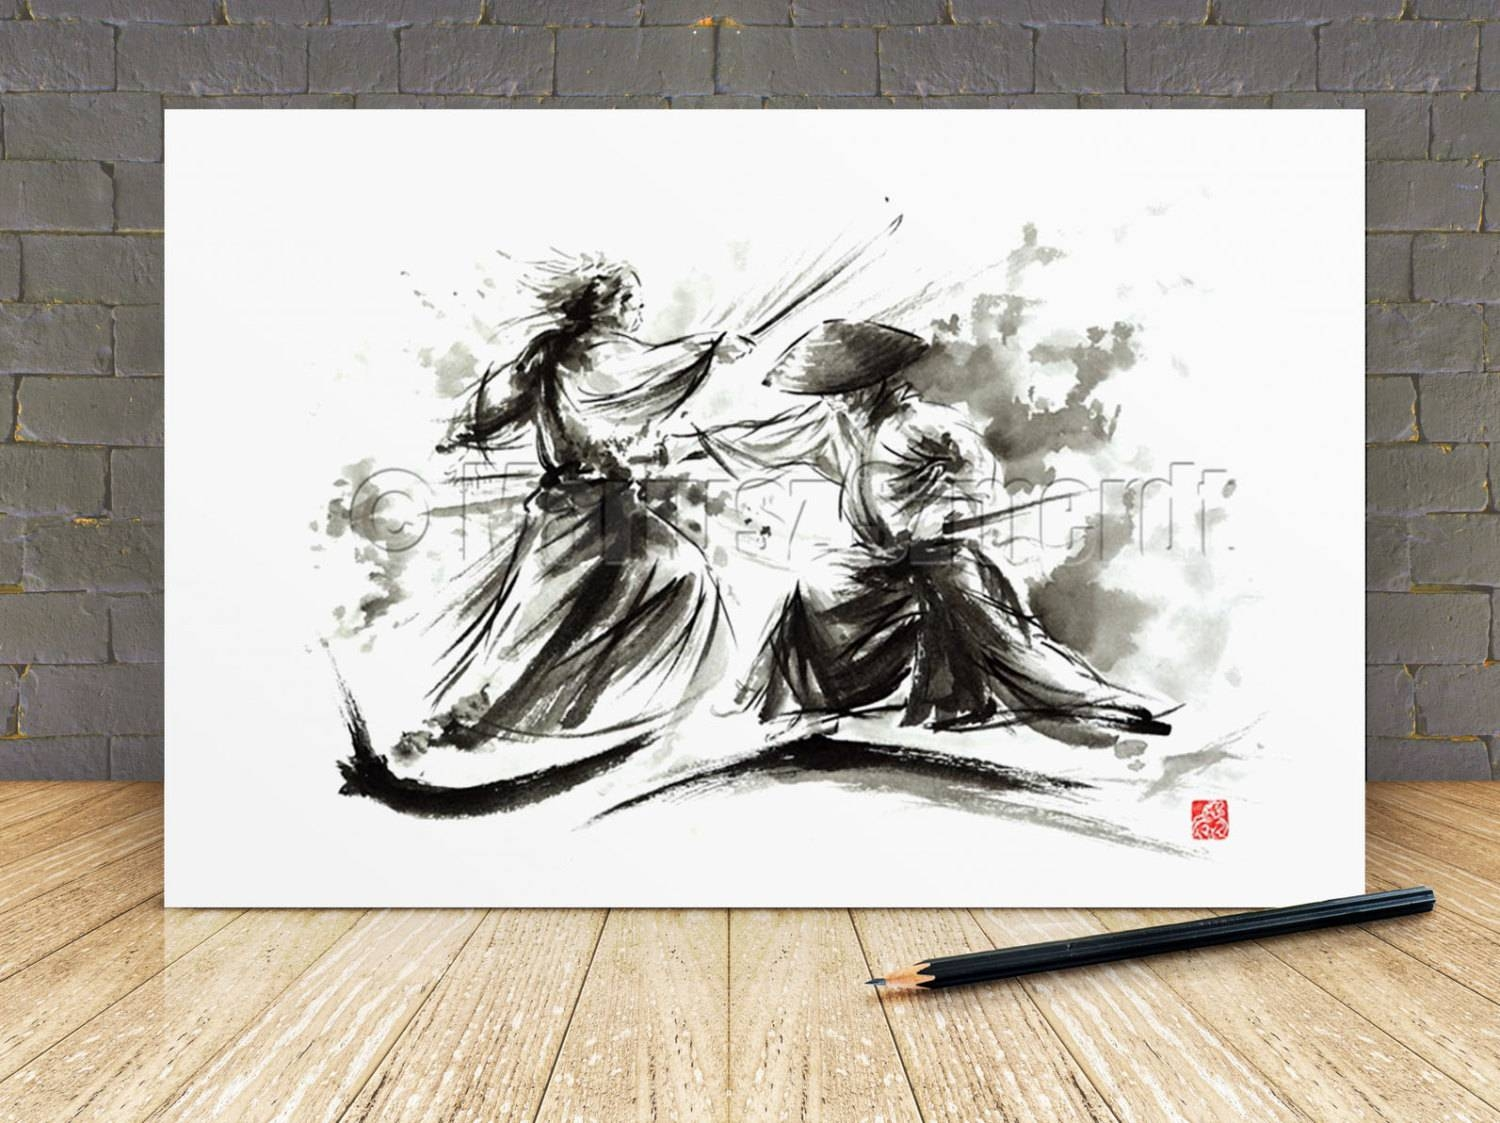 Samurai Wall Decor Poster Japanese Sword Warrior Artwork Pertaining To 2017 Samurai Wall Art (View 12 of 20)